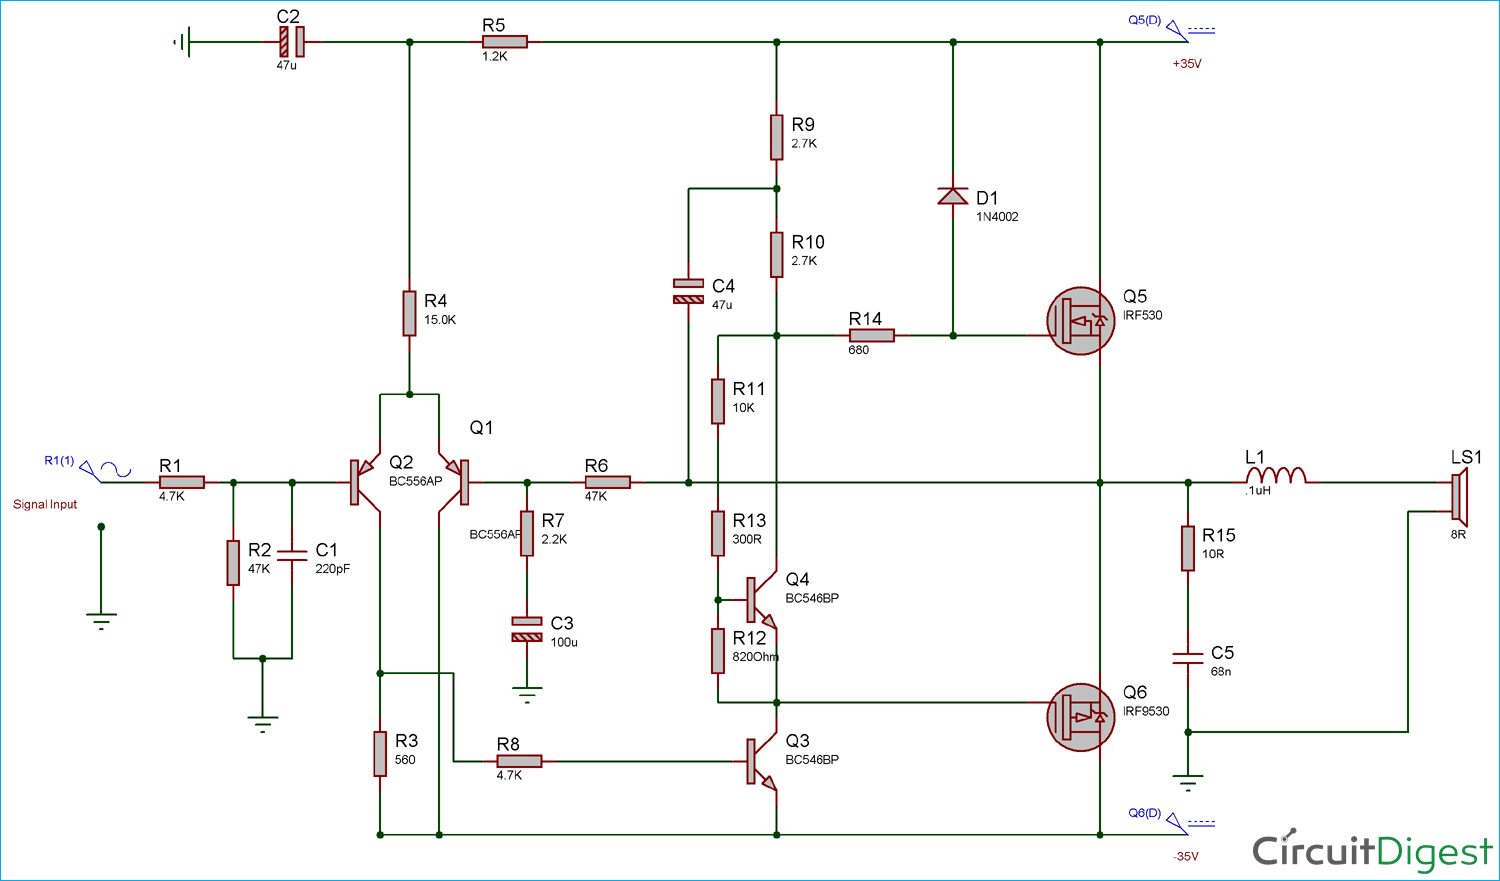 hight resolution of 10 watt power amplifier circuit diagram electronic circuits diagram power amplifier circuit diagram amplifiercircuit circuit diagram